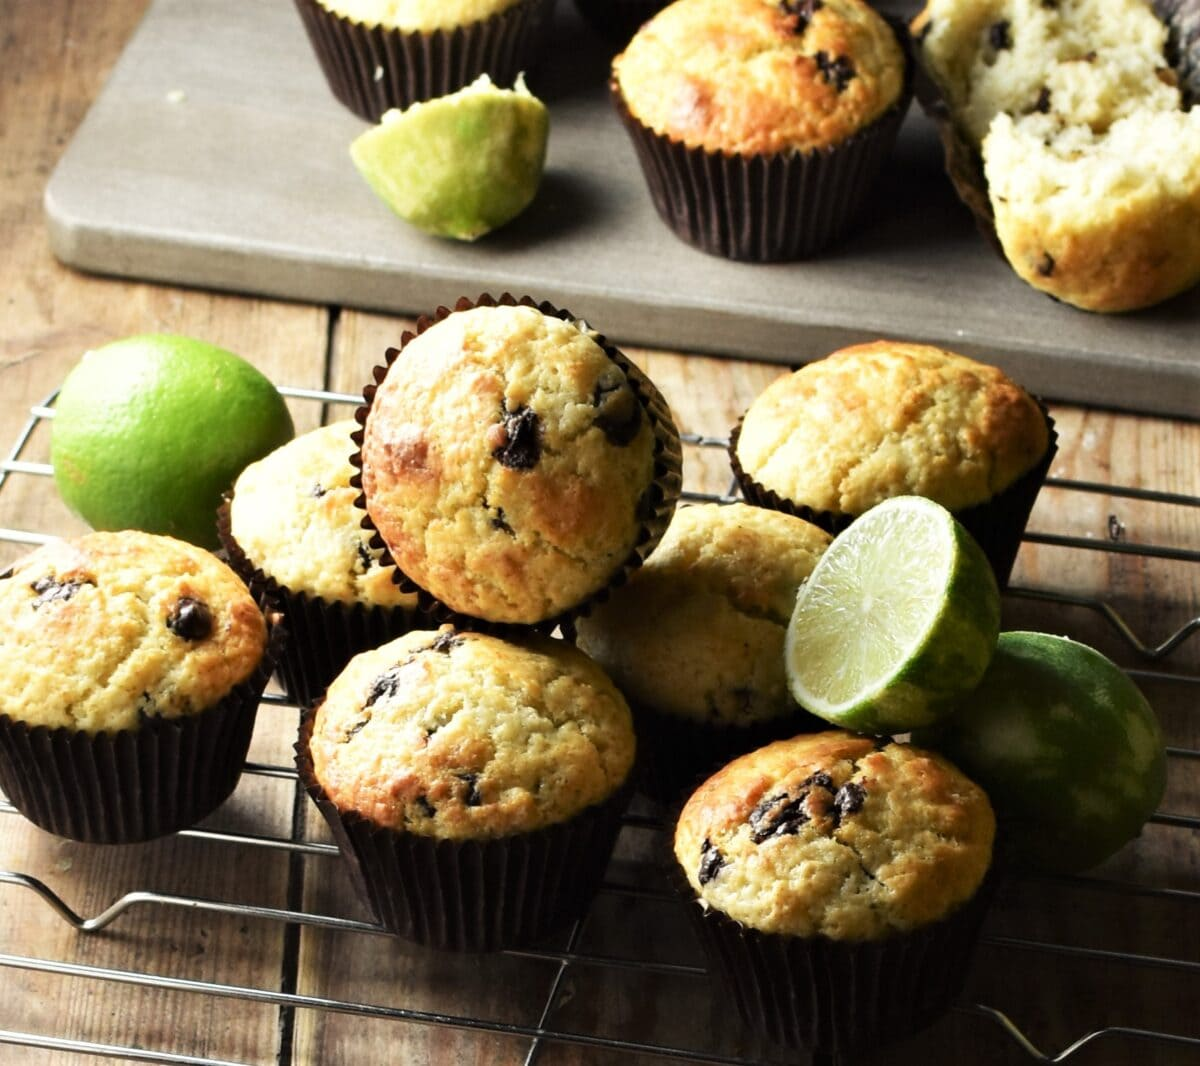 Muffins with chocolate chips in brown cases and limes on rack and grey wooden board in background.